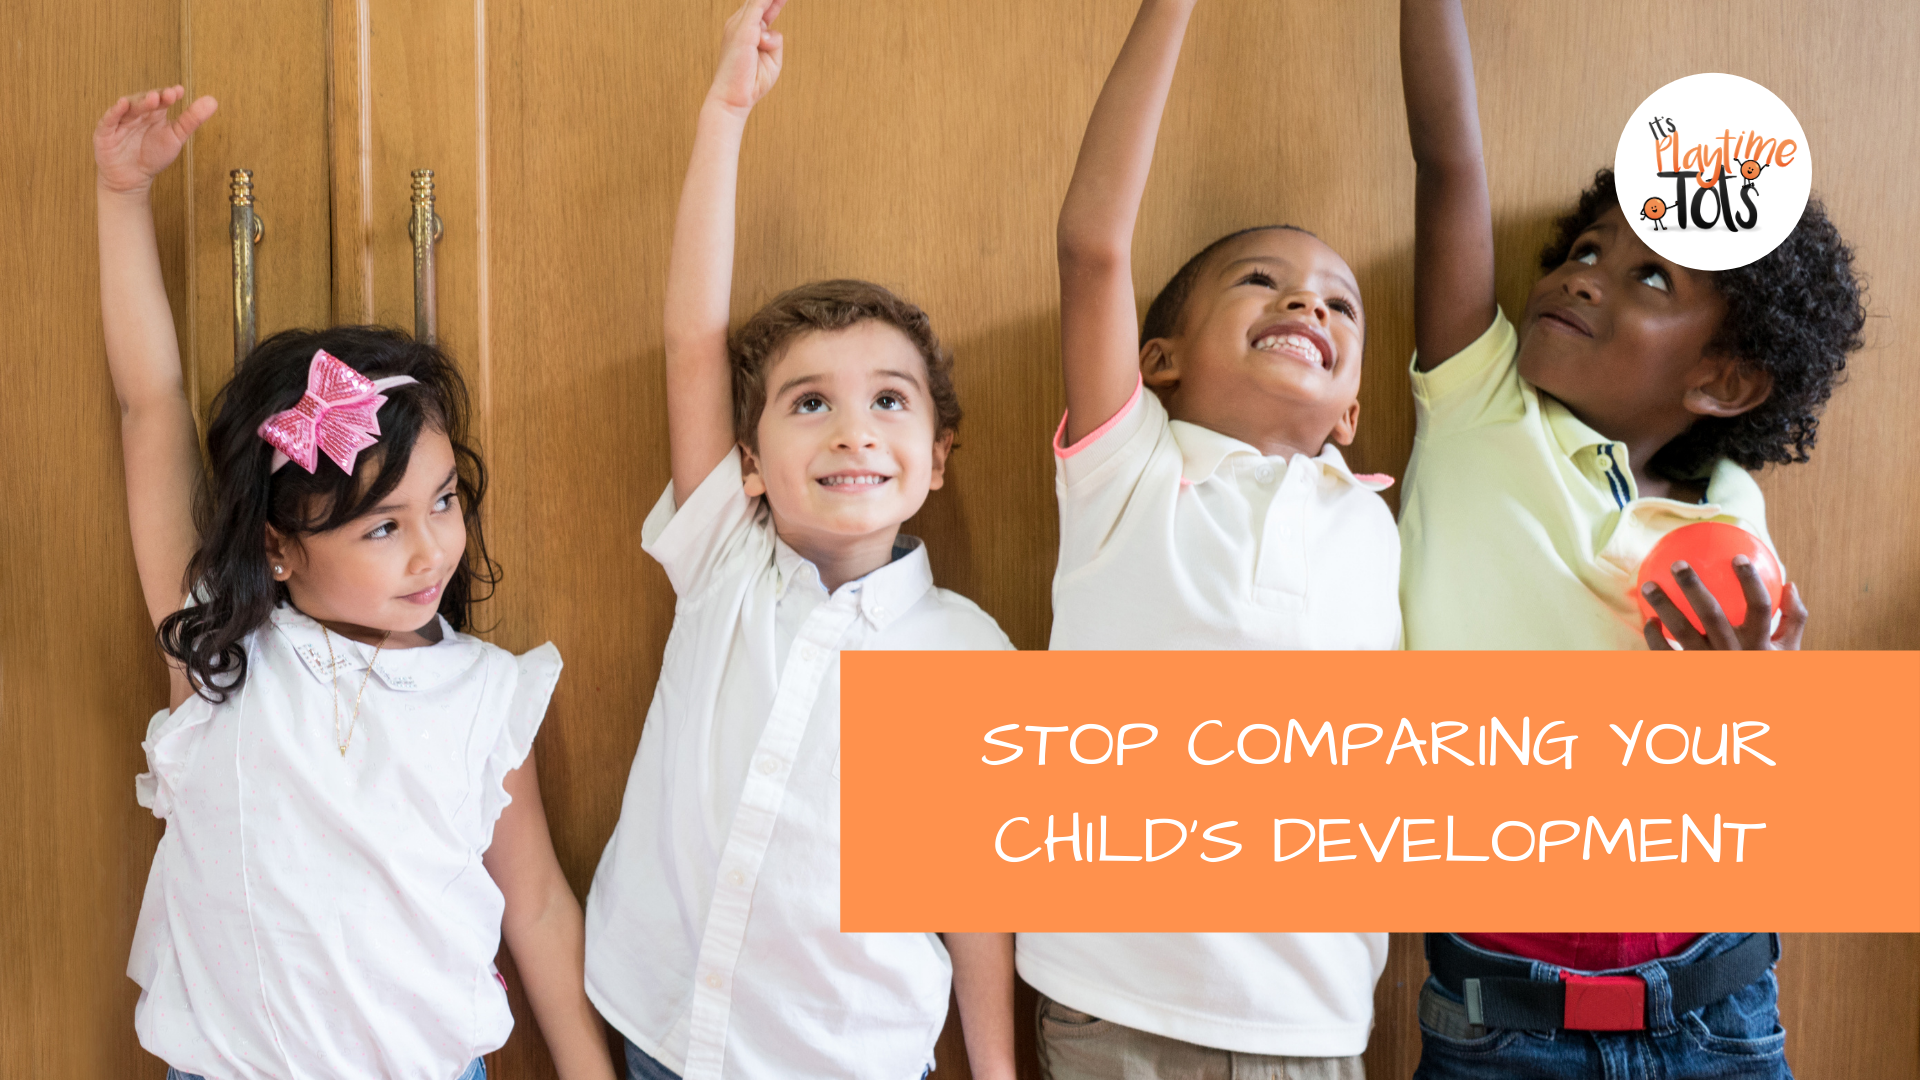 Stop Comparing Your Child's Development